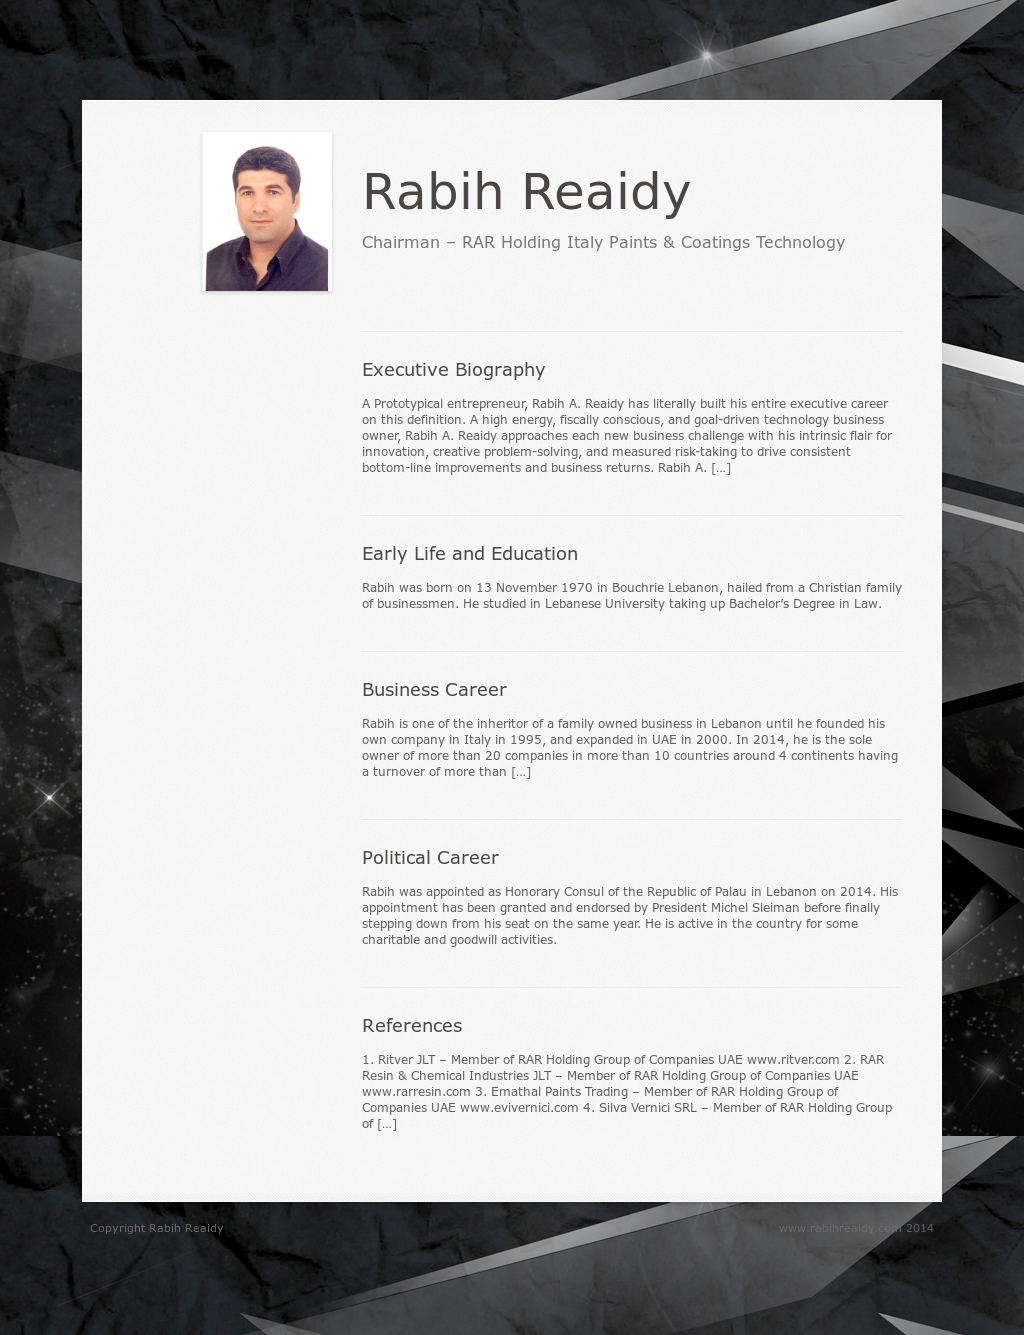 Rabih Reaidy Competitors, Revenue and Employees - Owler Company Profile